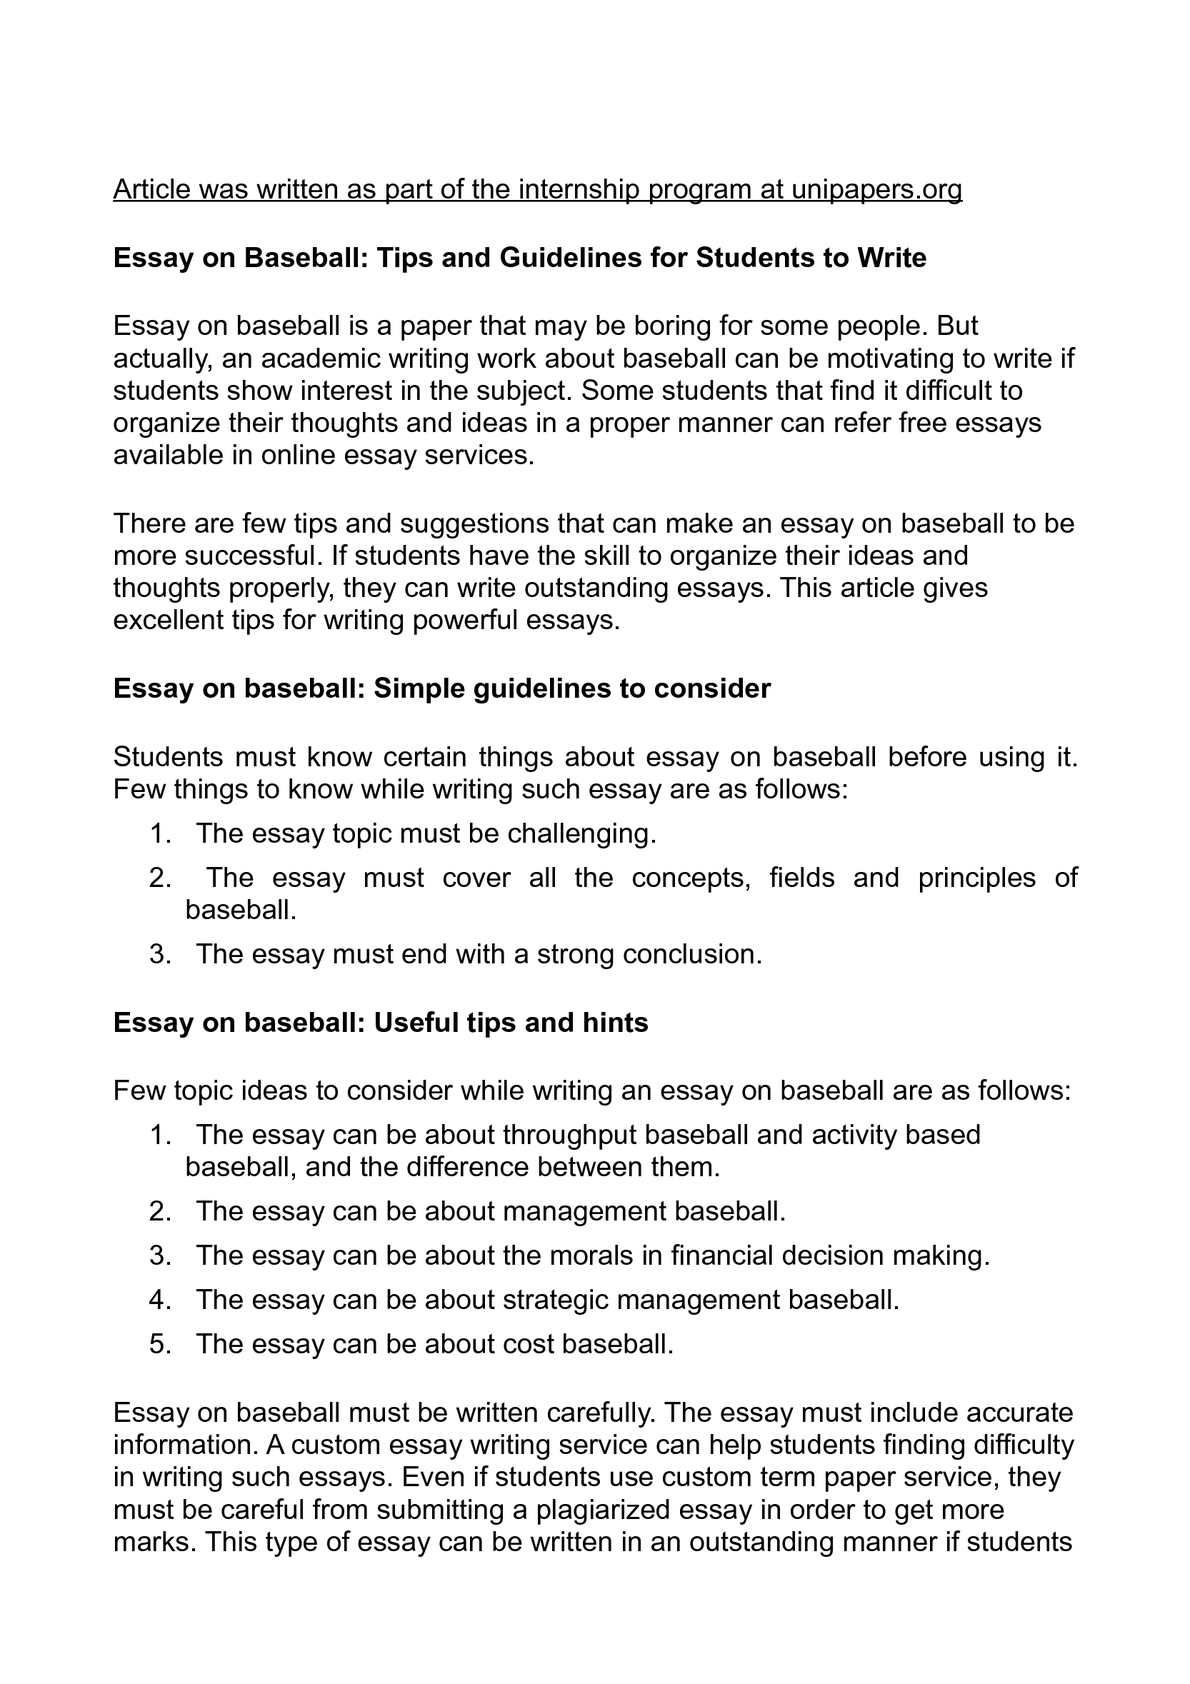 calam atilde copy o essay on baseball tips and guidelines for students to write